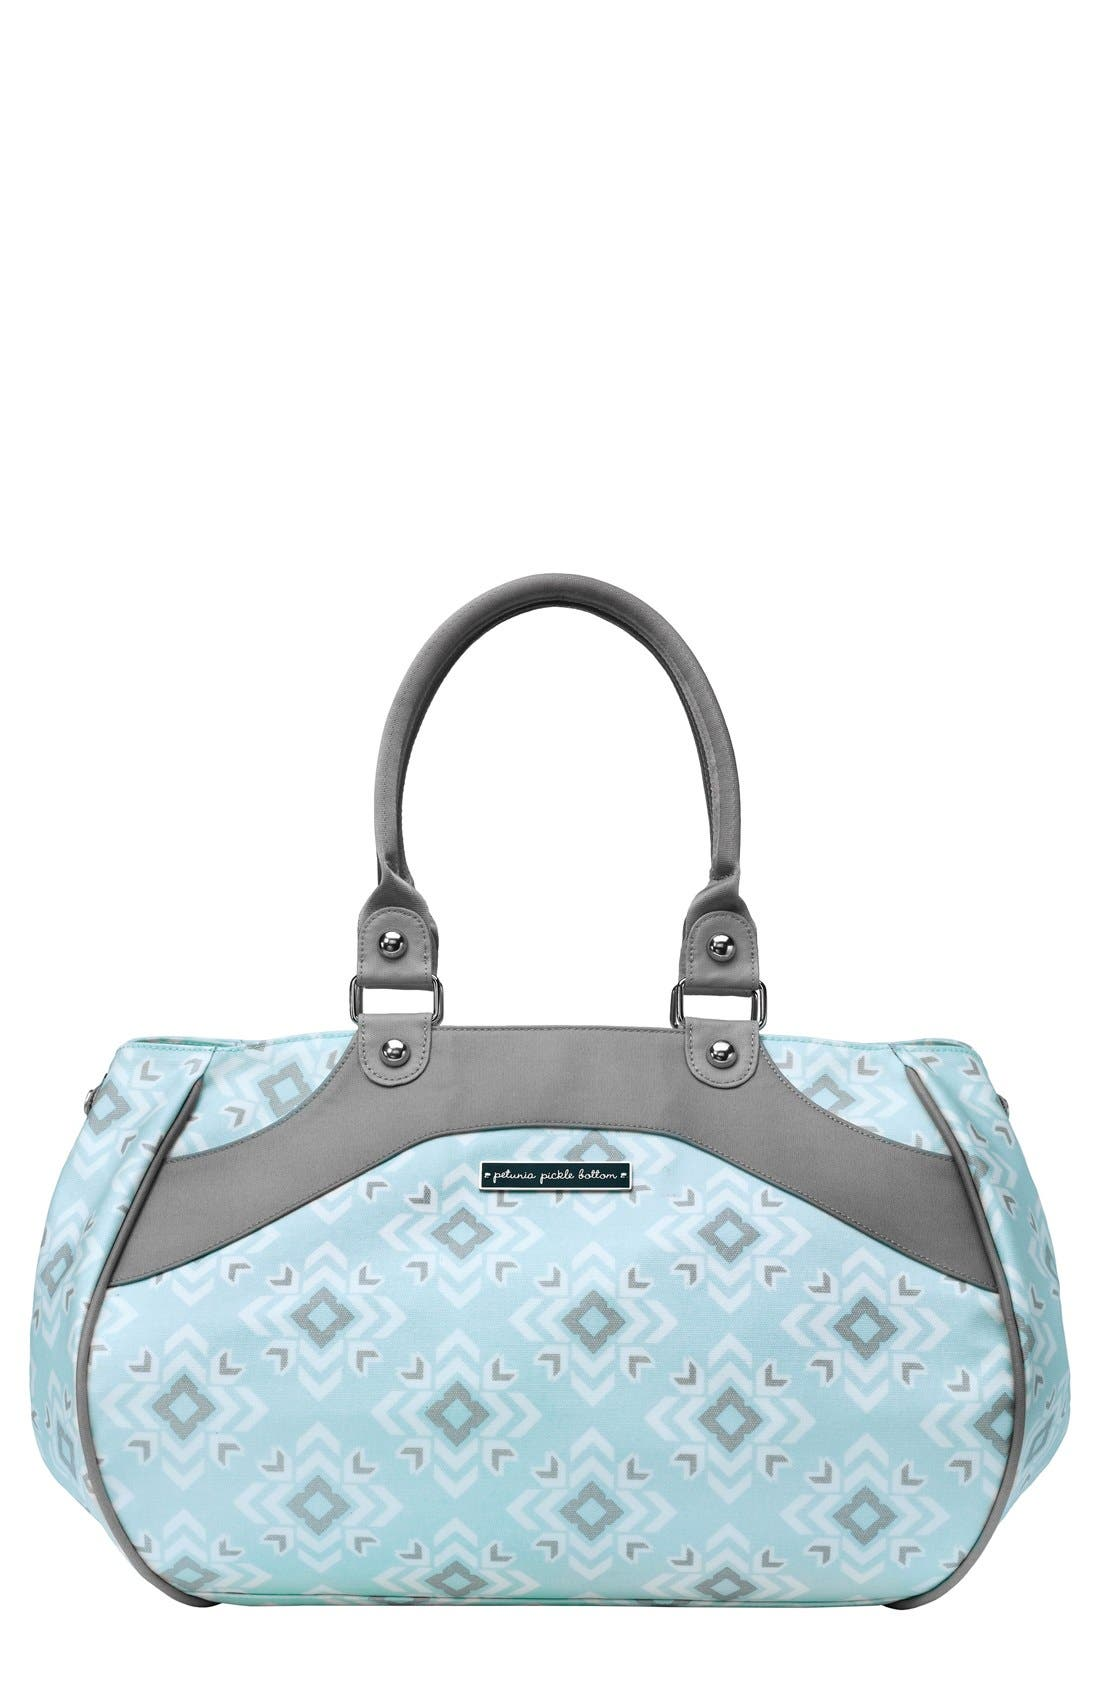 Petunia Pickle Bottom 'Wistful Weekend' Glazed Cotton Diaper Bag